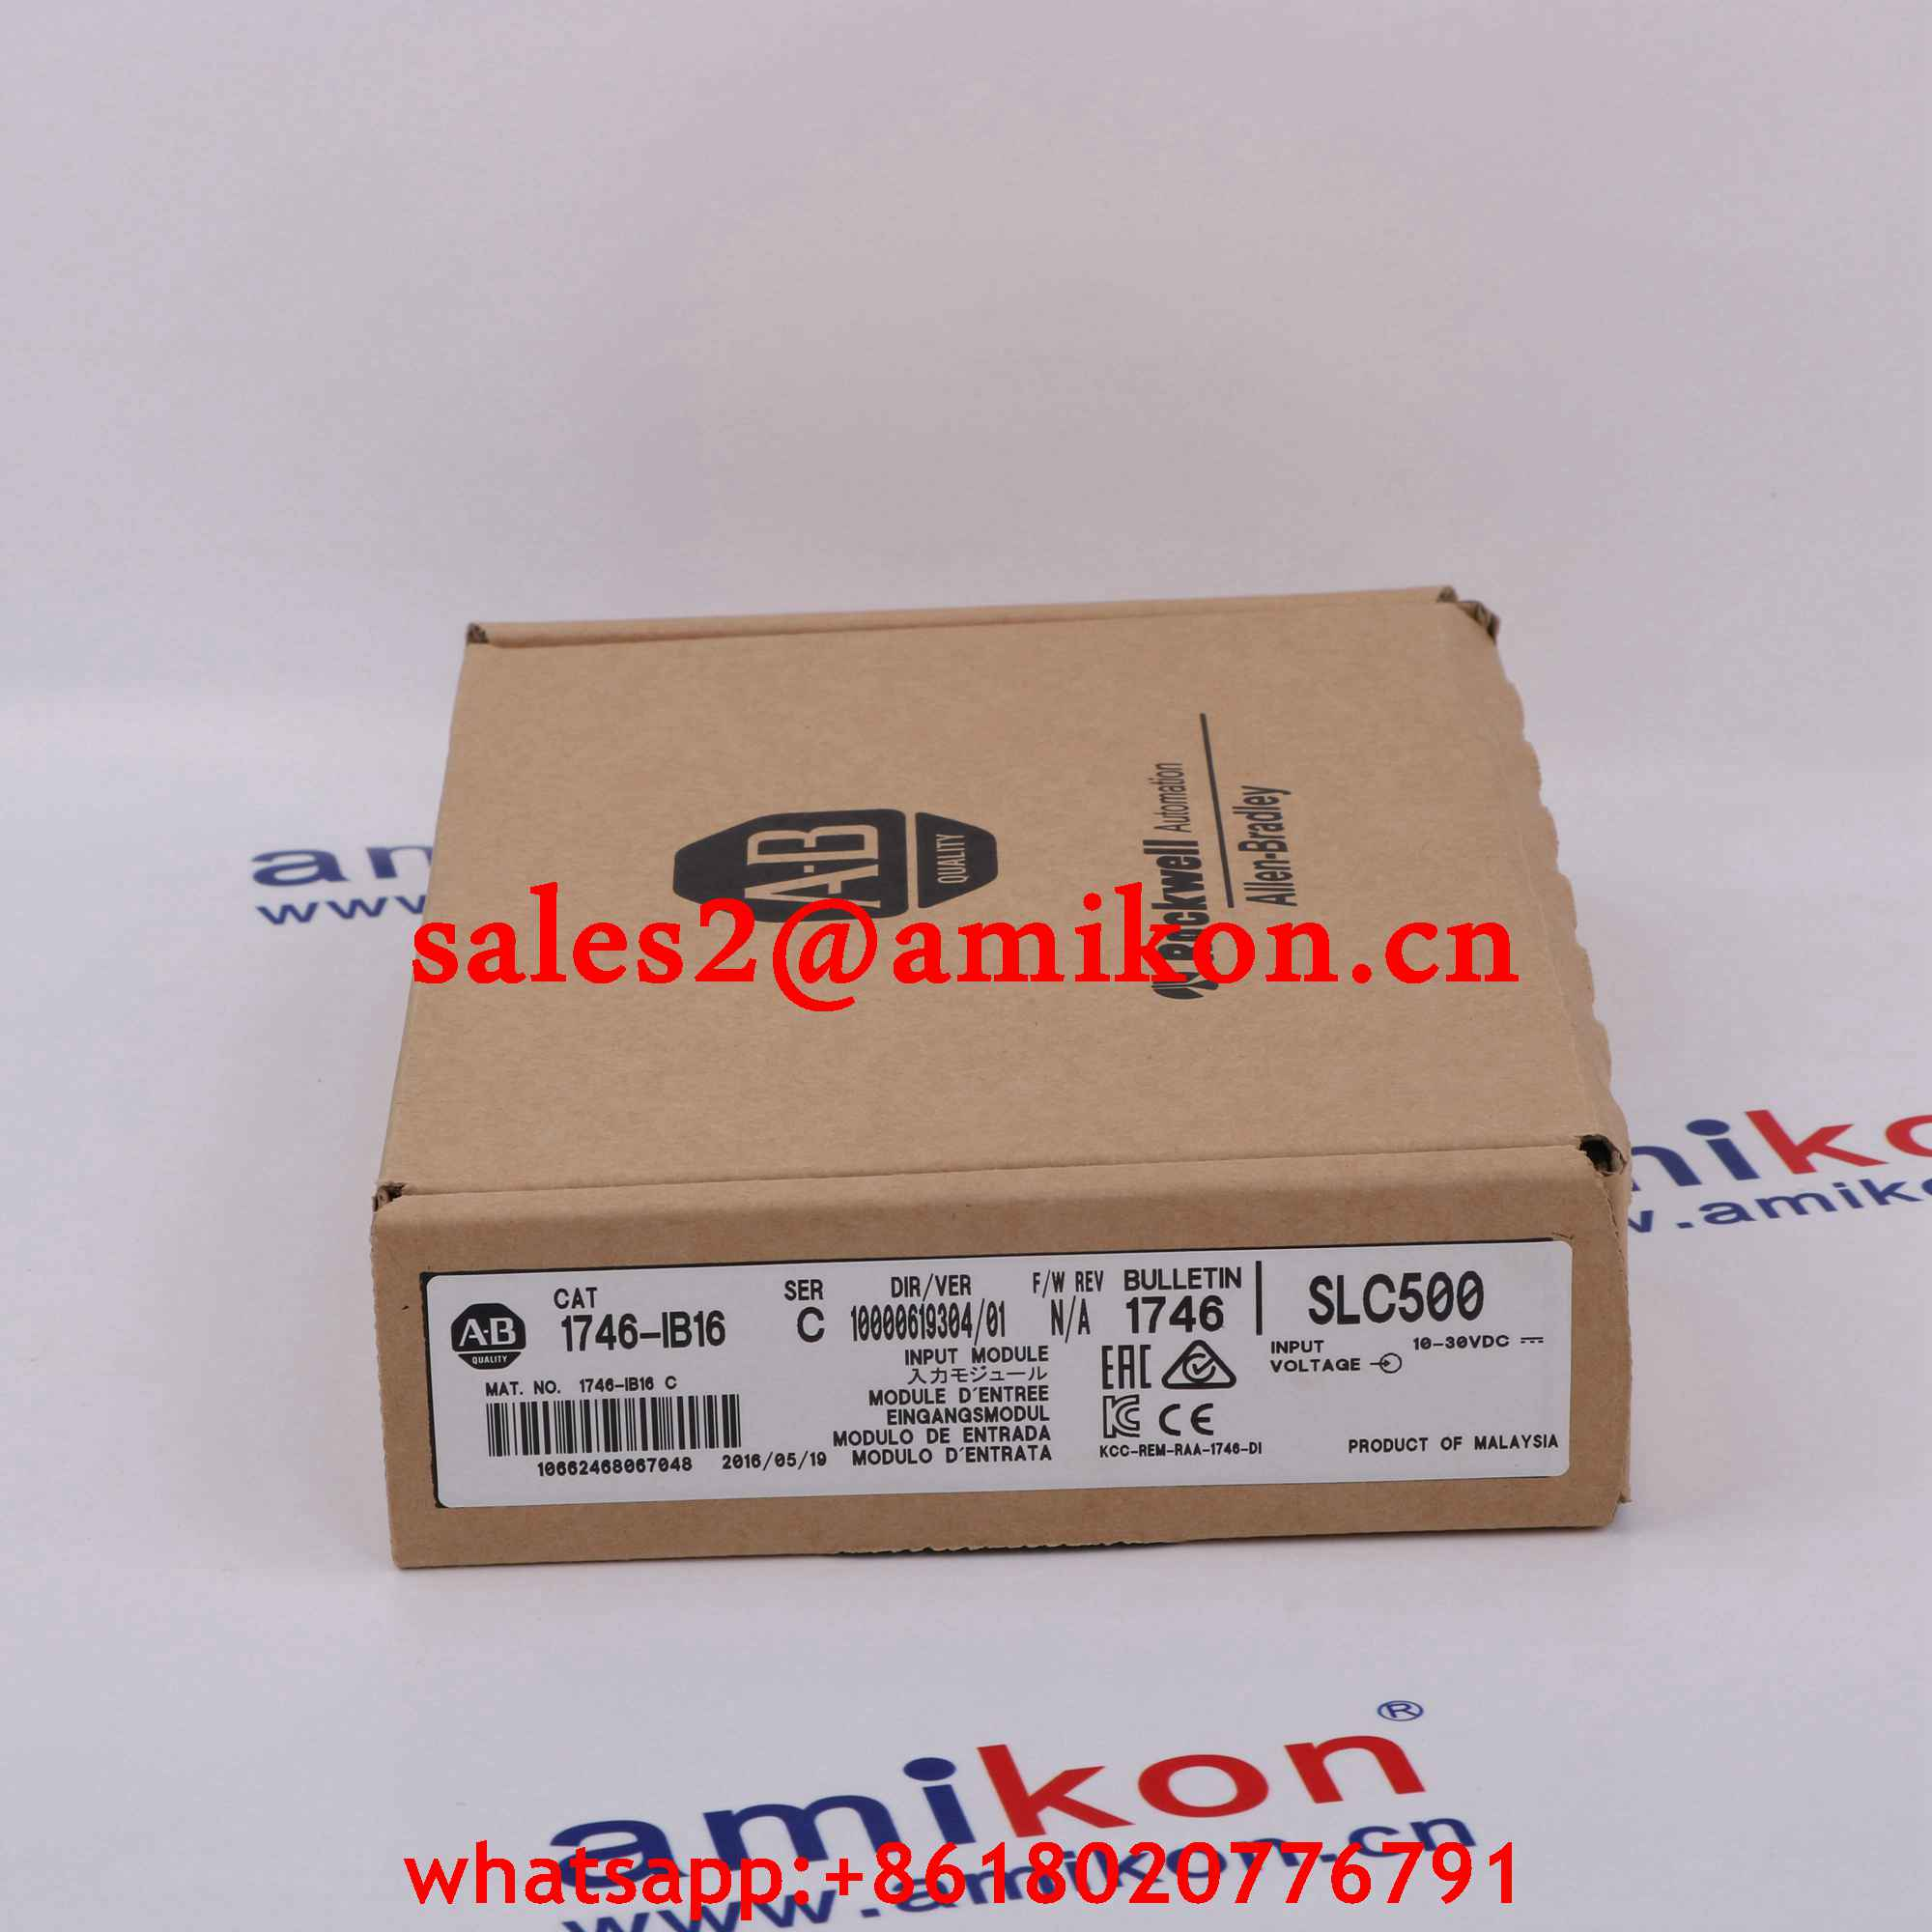 SIEMENS 6ES7414-4HR14-0AB0 NEW IN STOCK DISOUNT SALE